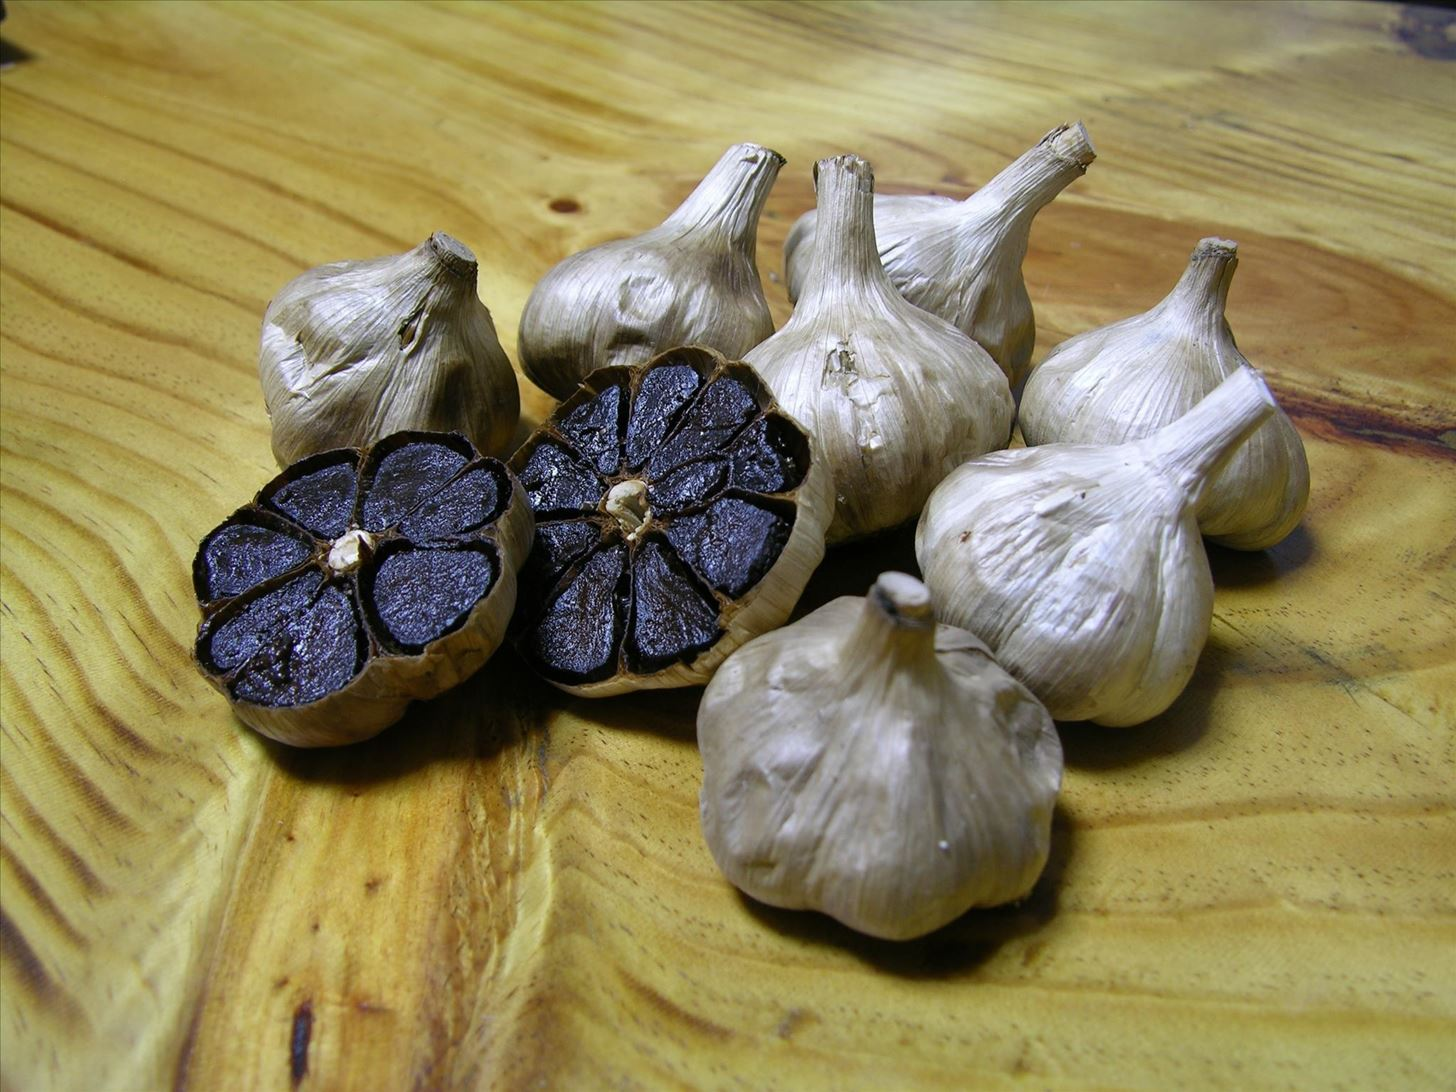 The Ultimate Garlic Cheat Sheet: Which Type of Garlic Goes Best with What?